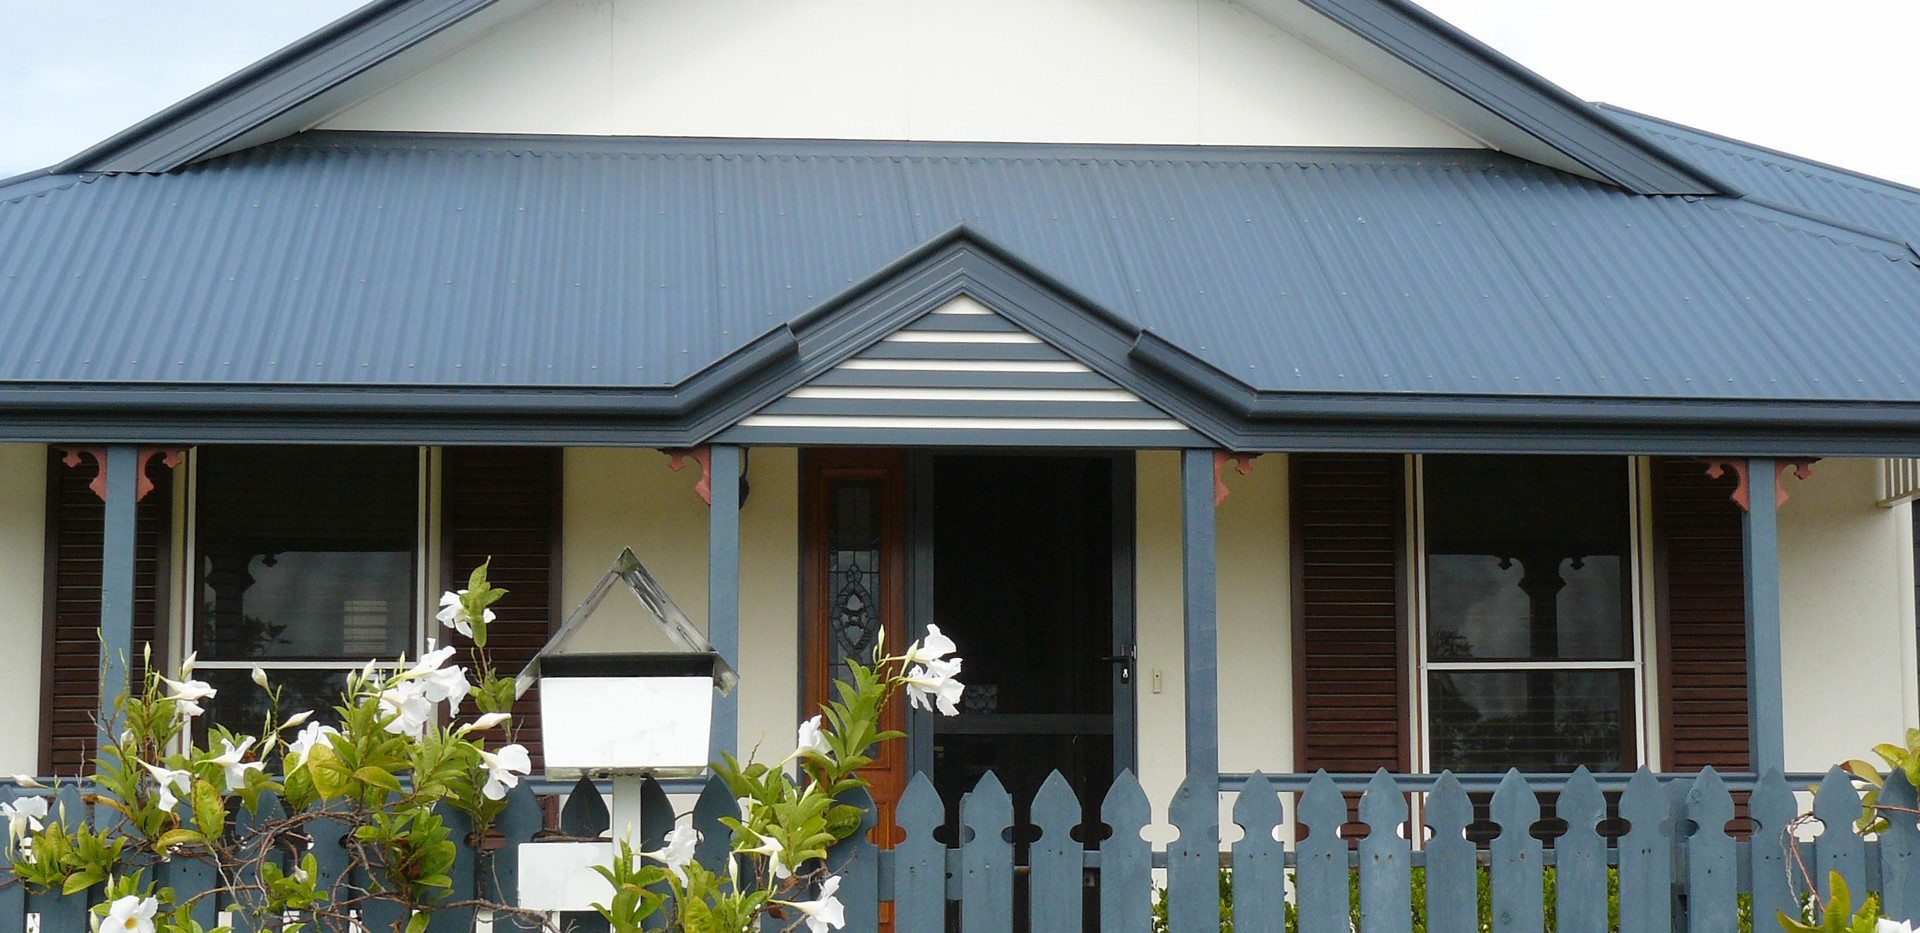 House With Porch centered.jpg